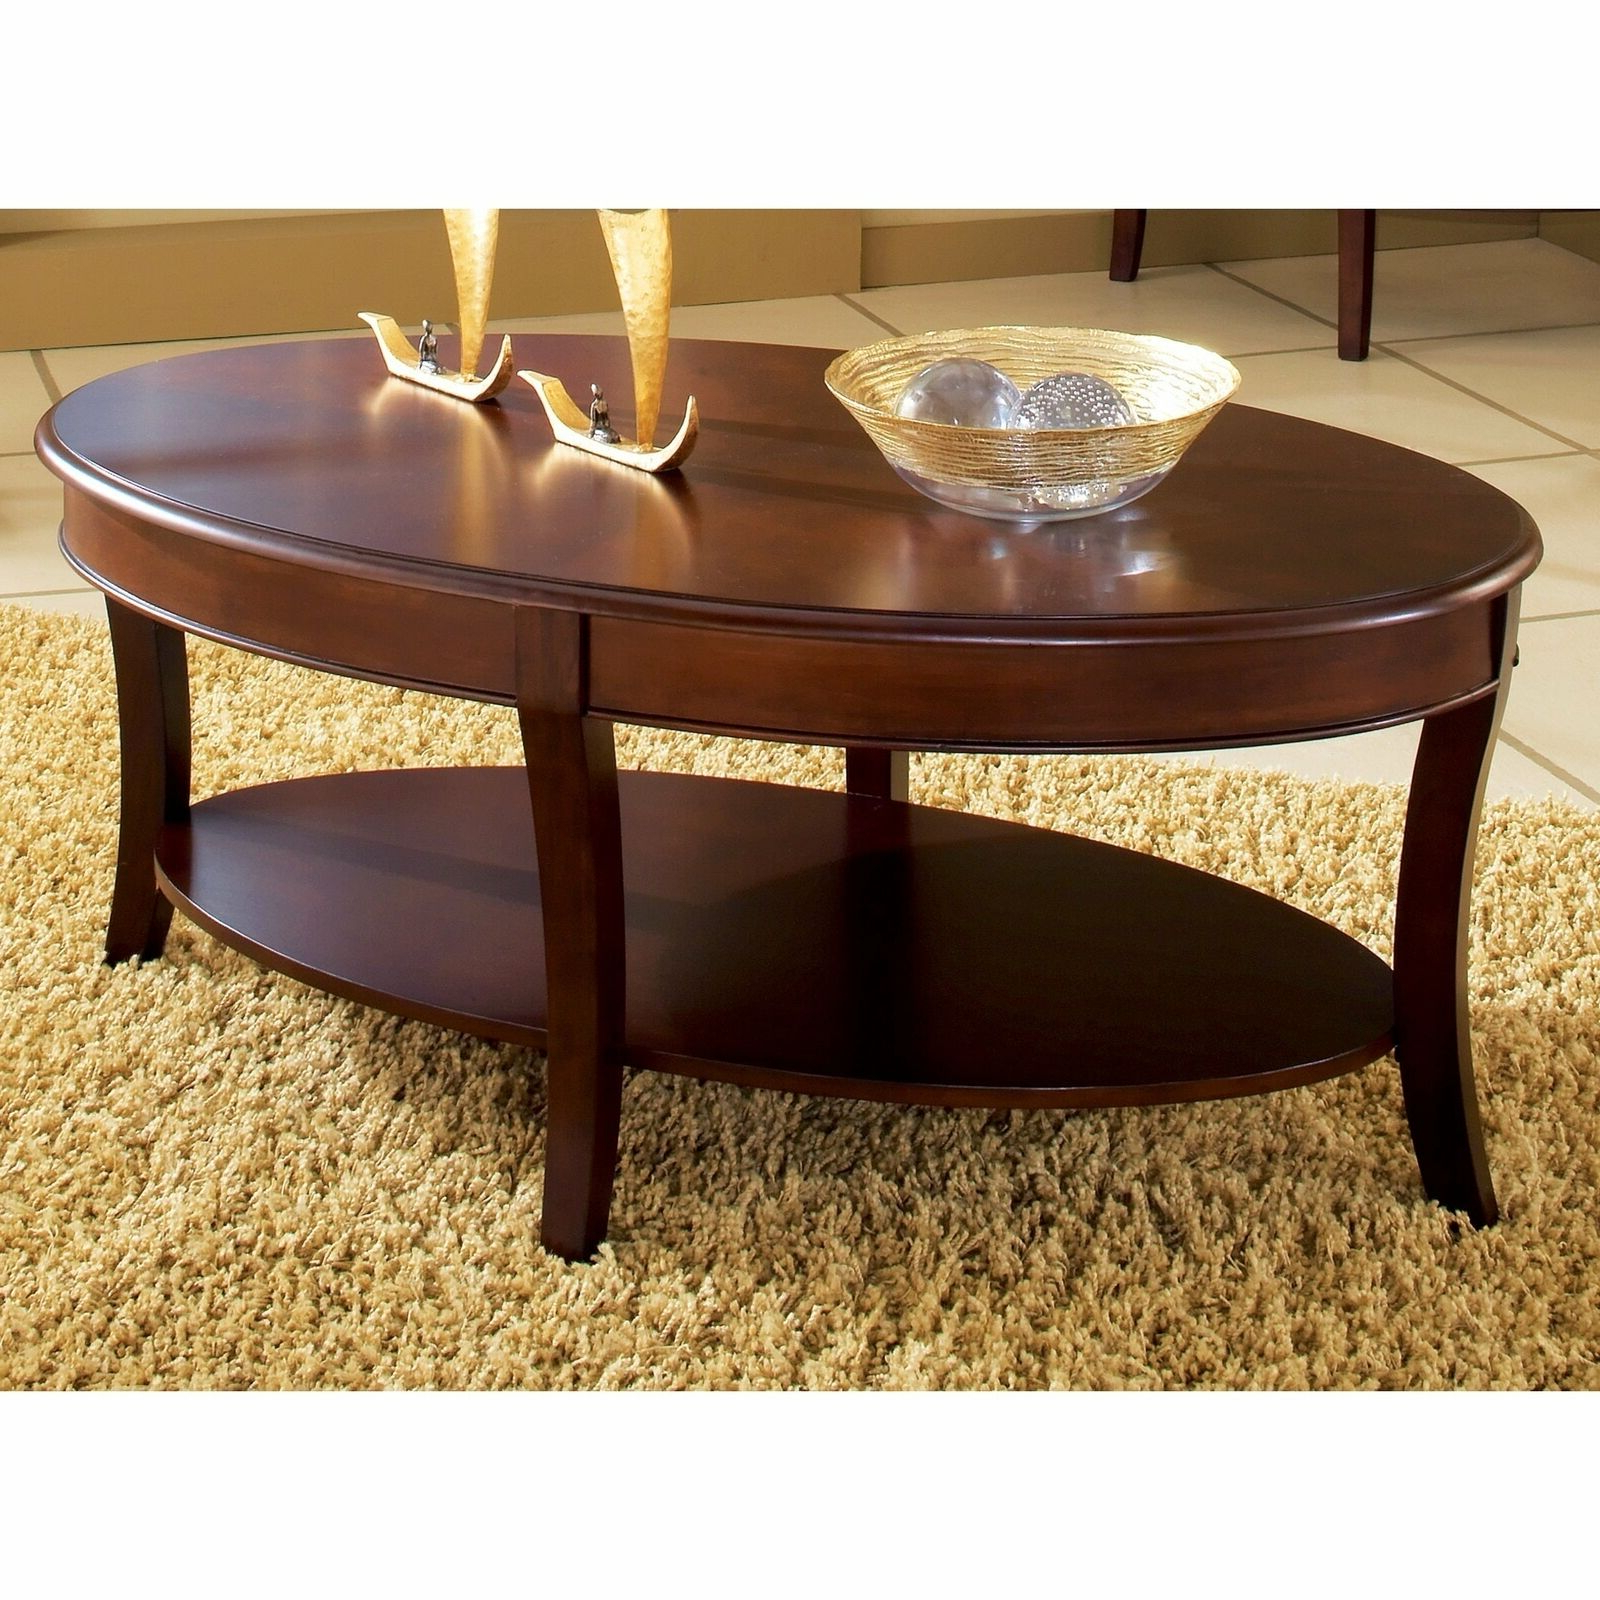 Copper Grove Angelina Oval Coffee Table Brown Cherry With Best And Newest Copper Grove Liatris Black And Satin Silver Coffee Tables (View 3 of 20)